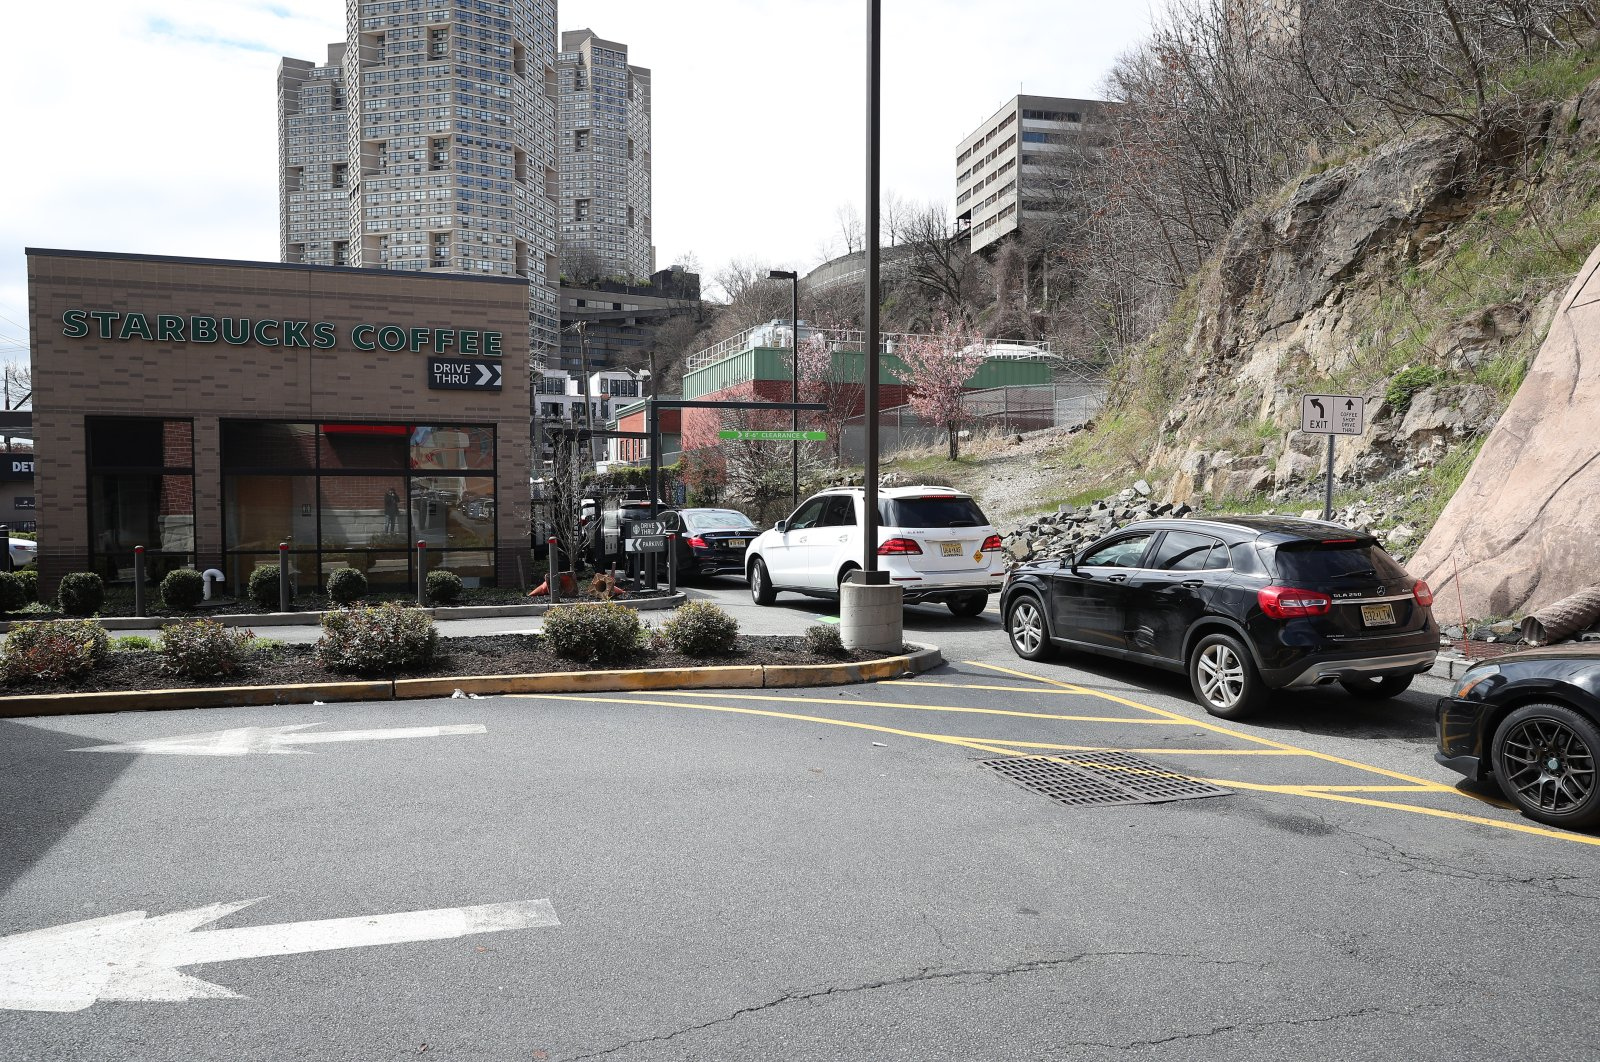 People waiting in their cars at a Starbucks drive-thru in New Jersey, U.S., April 8, 2020. (AA Photo)